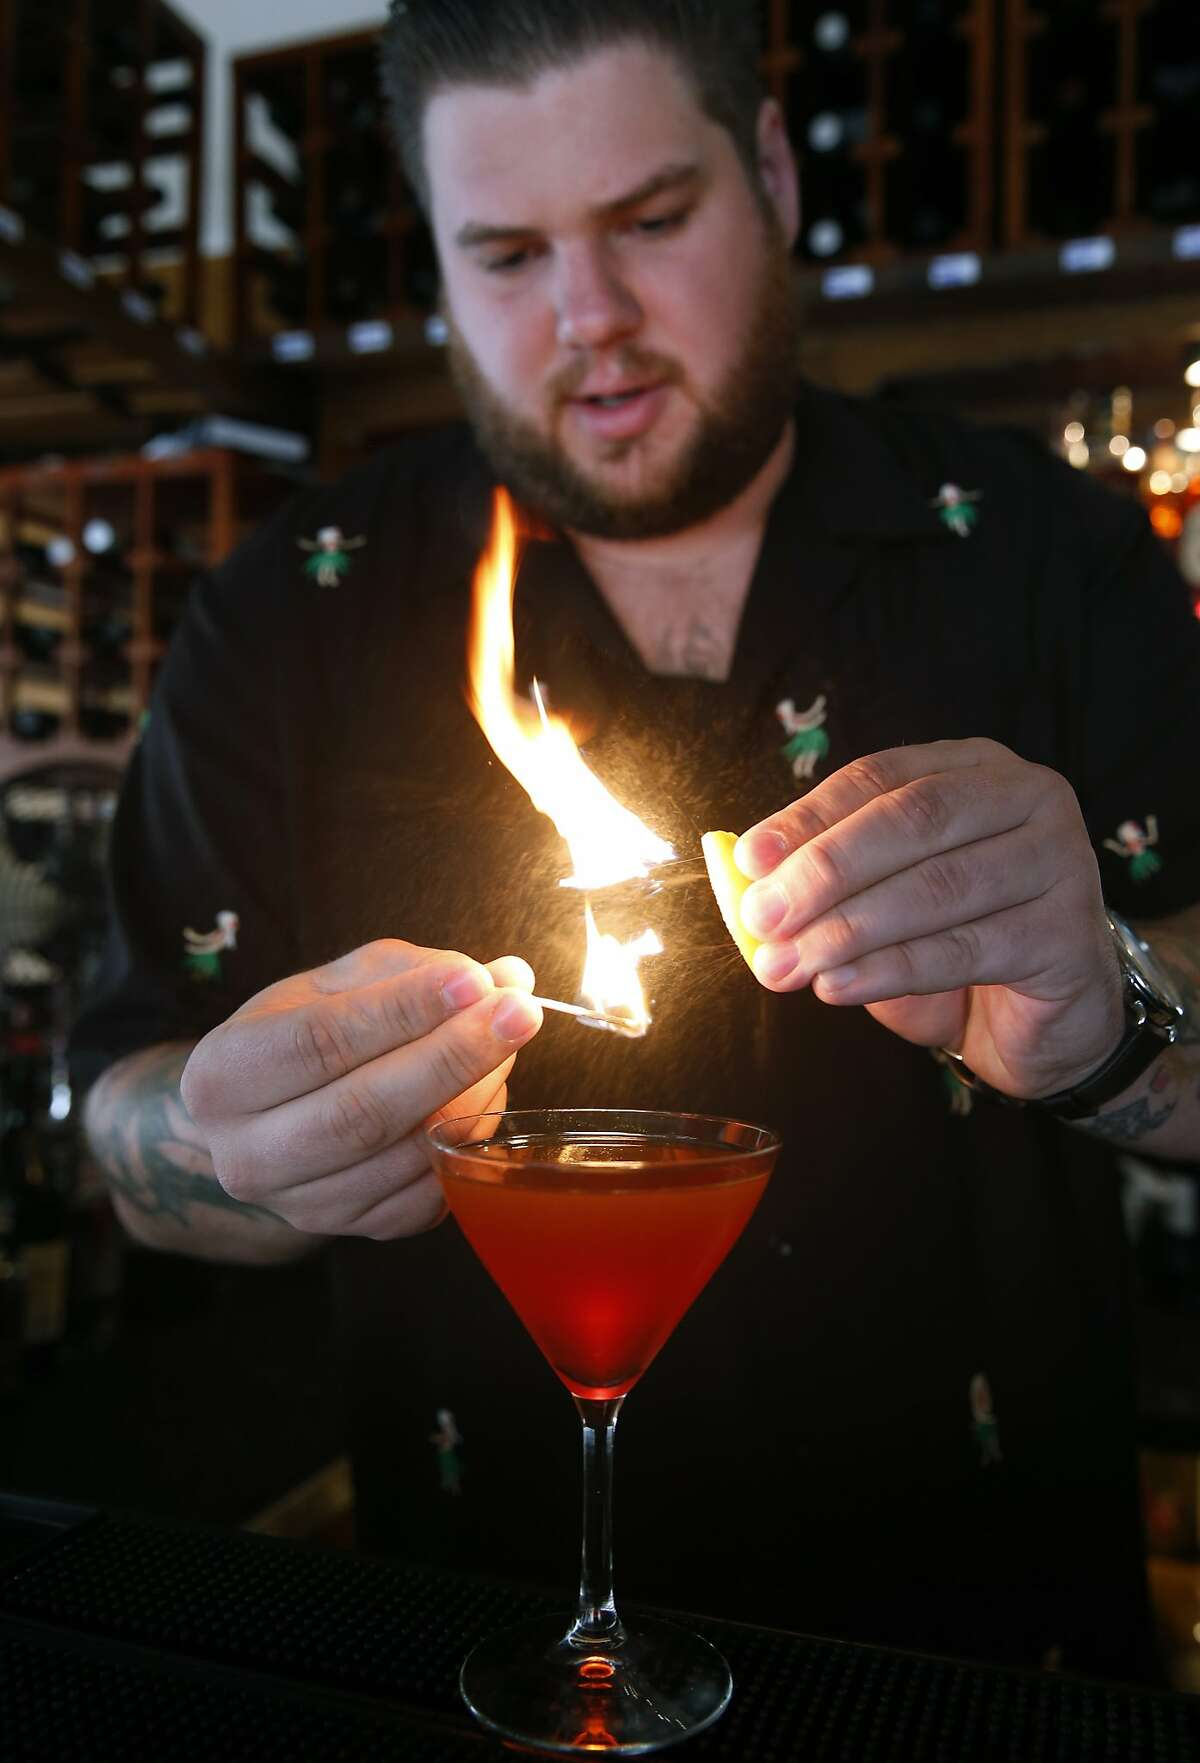 Kevin Correnti adds a citrusy flare to a Boulevardiere Negoni cocktail at his Trattoria Contadina restaurant in San Francisco, Calif. on Saturday, Dec. 5, 2015.